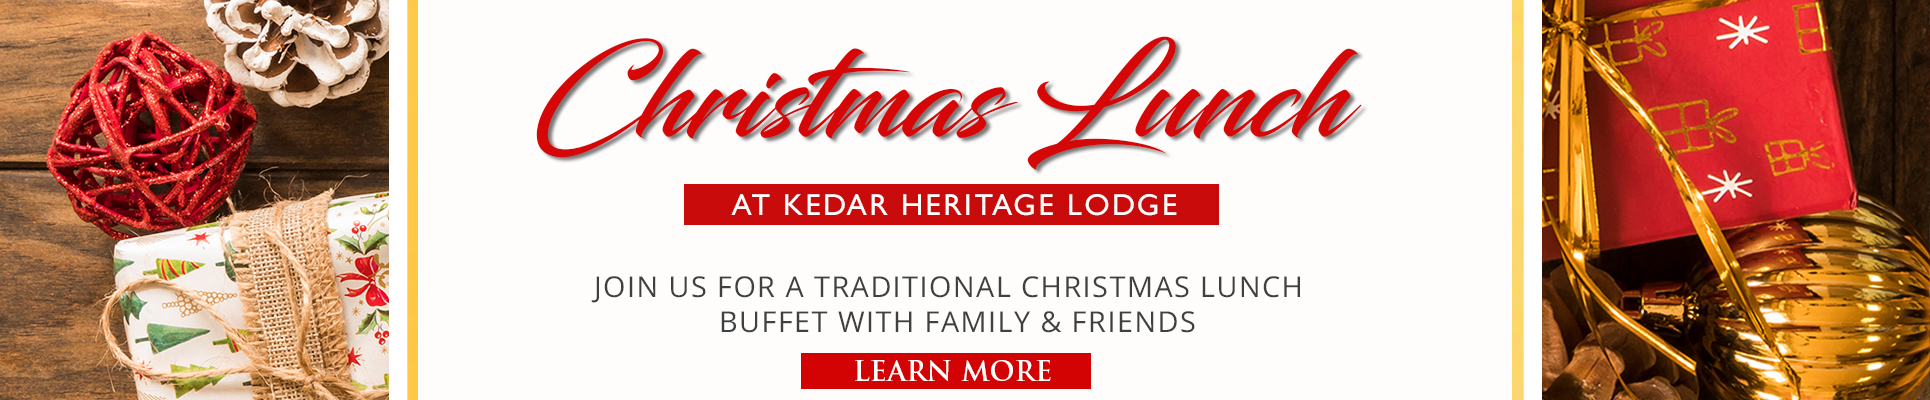 Kedar Christmas Lunch 2019